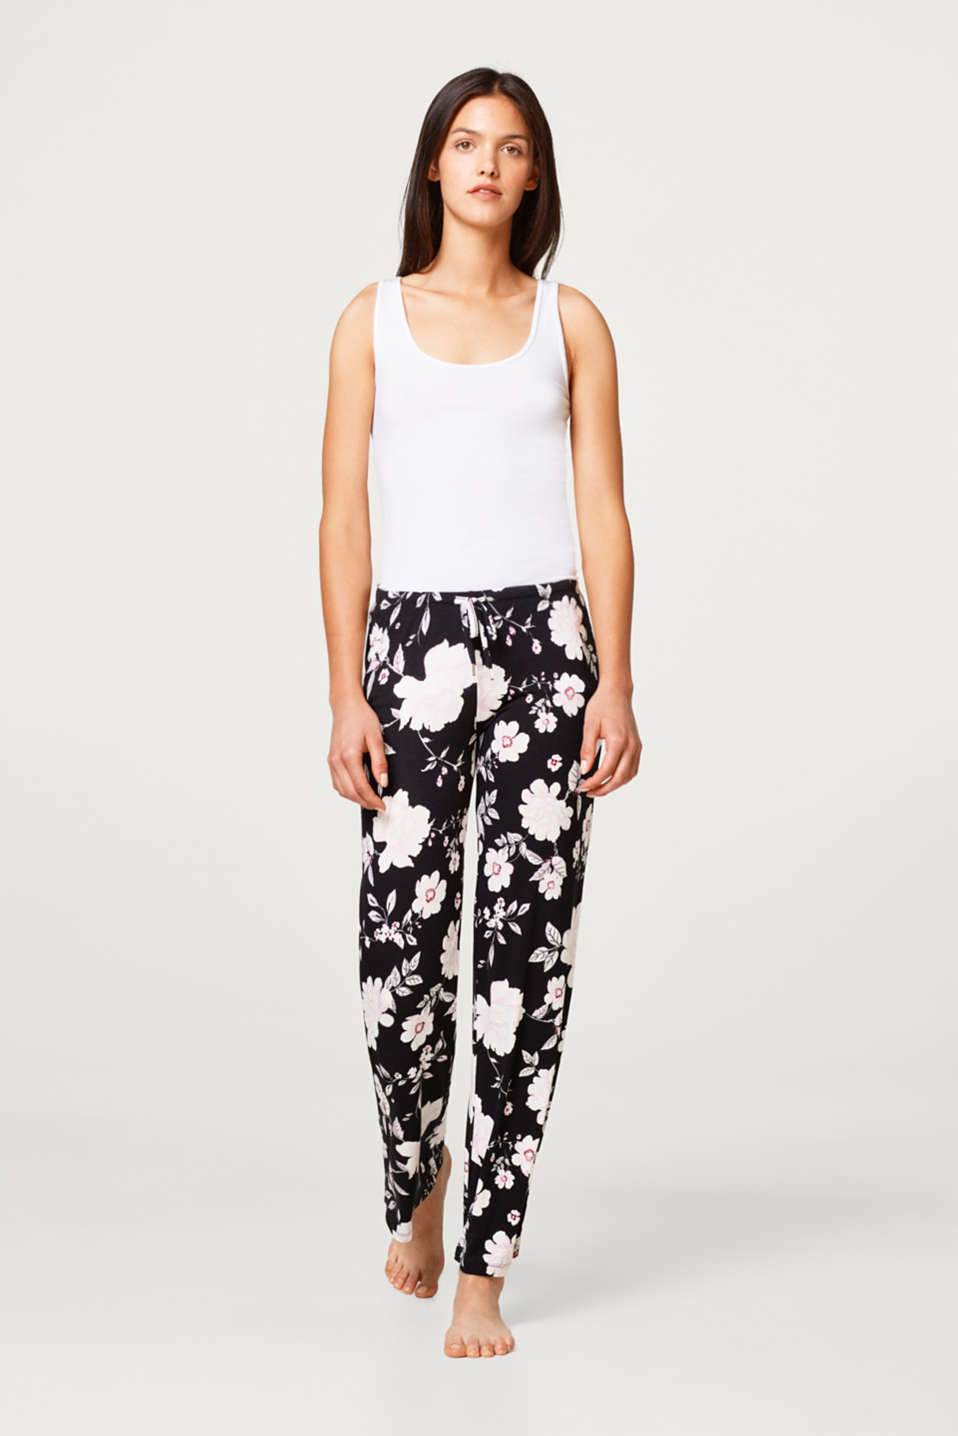 Esprit - Stretch jersey pyjama bottoms with a floral print